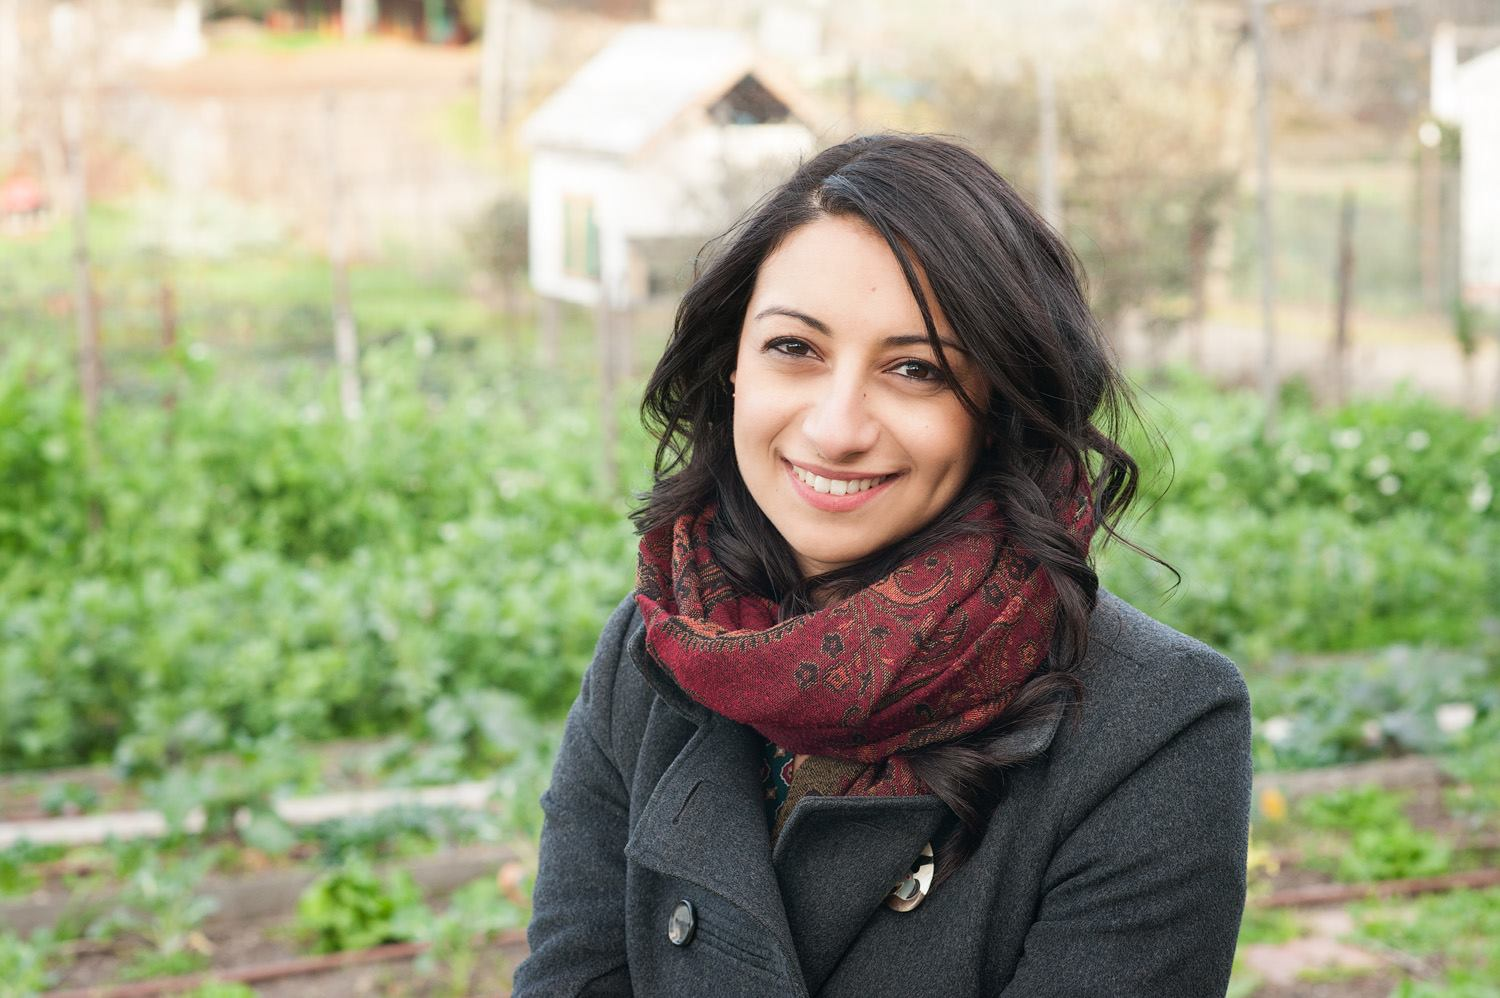 Rasha Tayeh -Growing Food Project   Growing Food Project (2013) is a short documentary written and directed by Rasha Tayeh, exploring Melbourne's local food movement and community food projects. Inspired by Melbourne's community food projects and Patrick Jones' poem, Step by Step - the film highlights stories of people coming together to build local, fair and sustainable food systems. Growing Food Project is a guest film taken from the Australian series of Hidden Features / Secret Cinema events organised by HERE+NOW Curatorial Director Jenny Humberstone in Melbourne and Brisbane 2013-2014.    www.growingfoodproject.org/